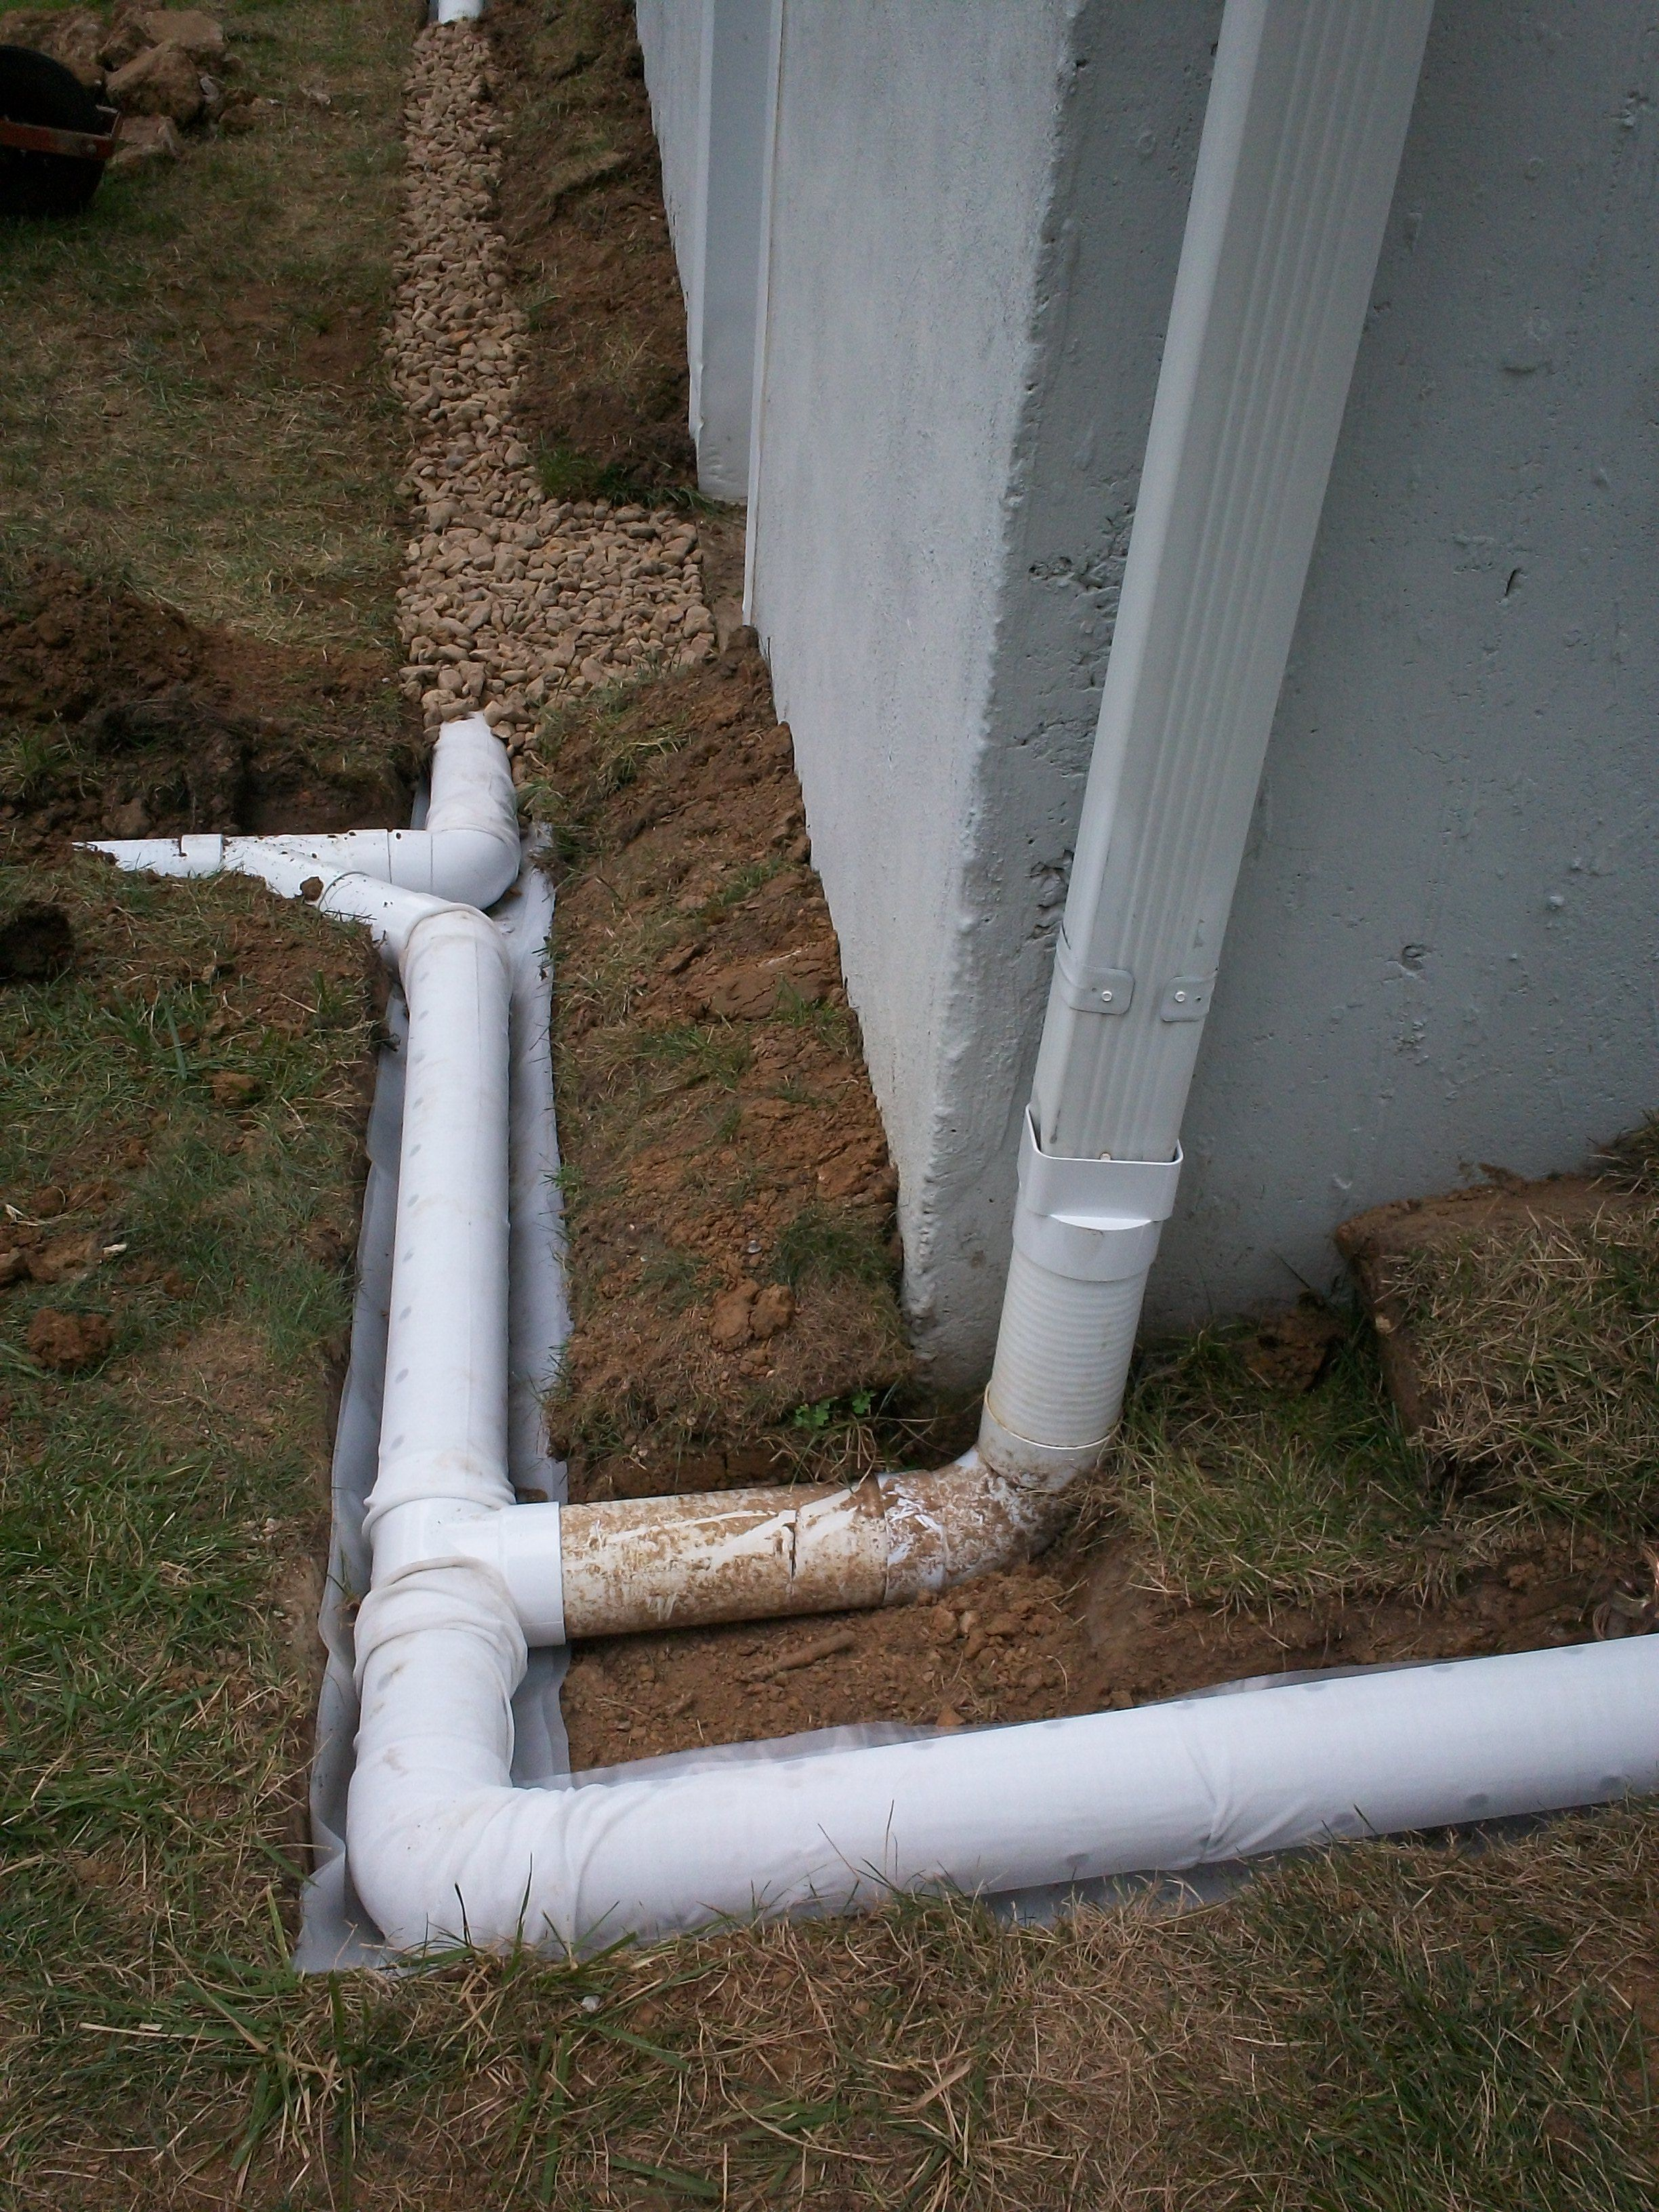 How to install a downspout in a gutter - Installation In Progress Downspout Extension Connected To French Drain